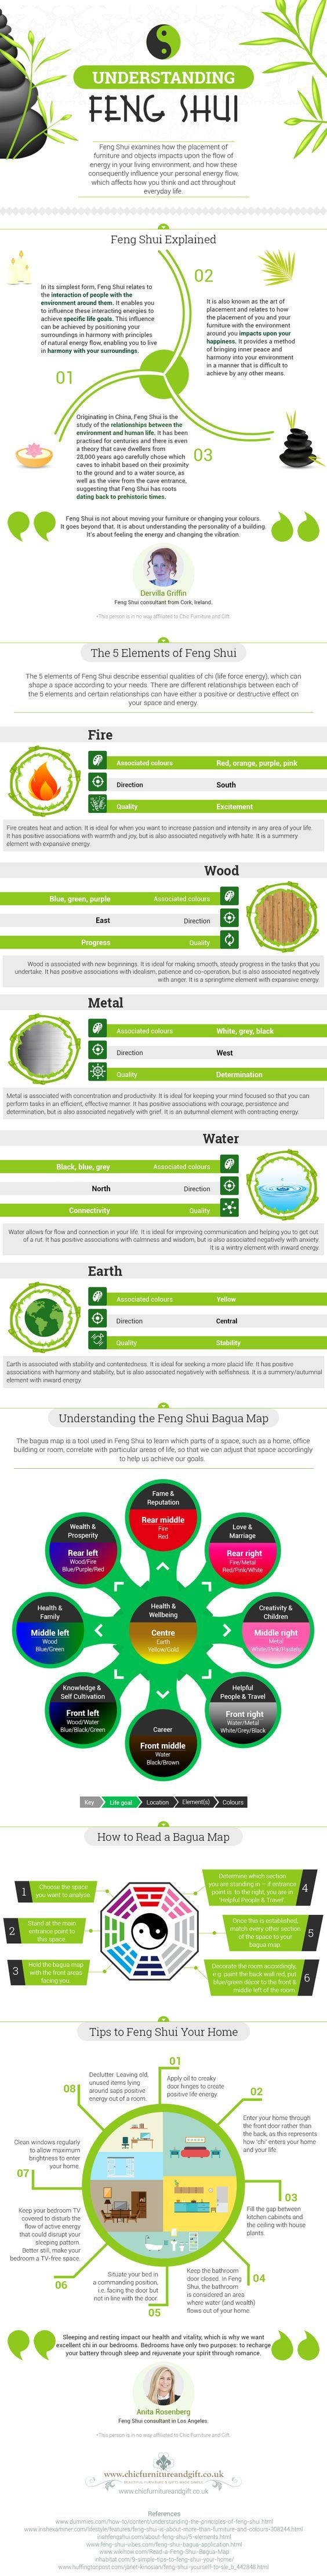 top 10 feng shui tips cre. Infographic Feng Shui Elements And Bagua Map Top 10 Tips Cre